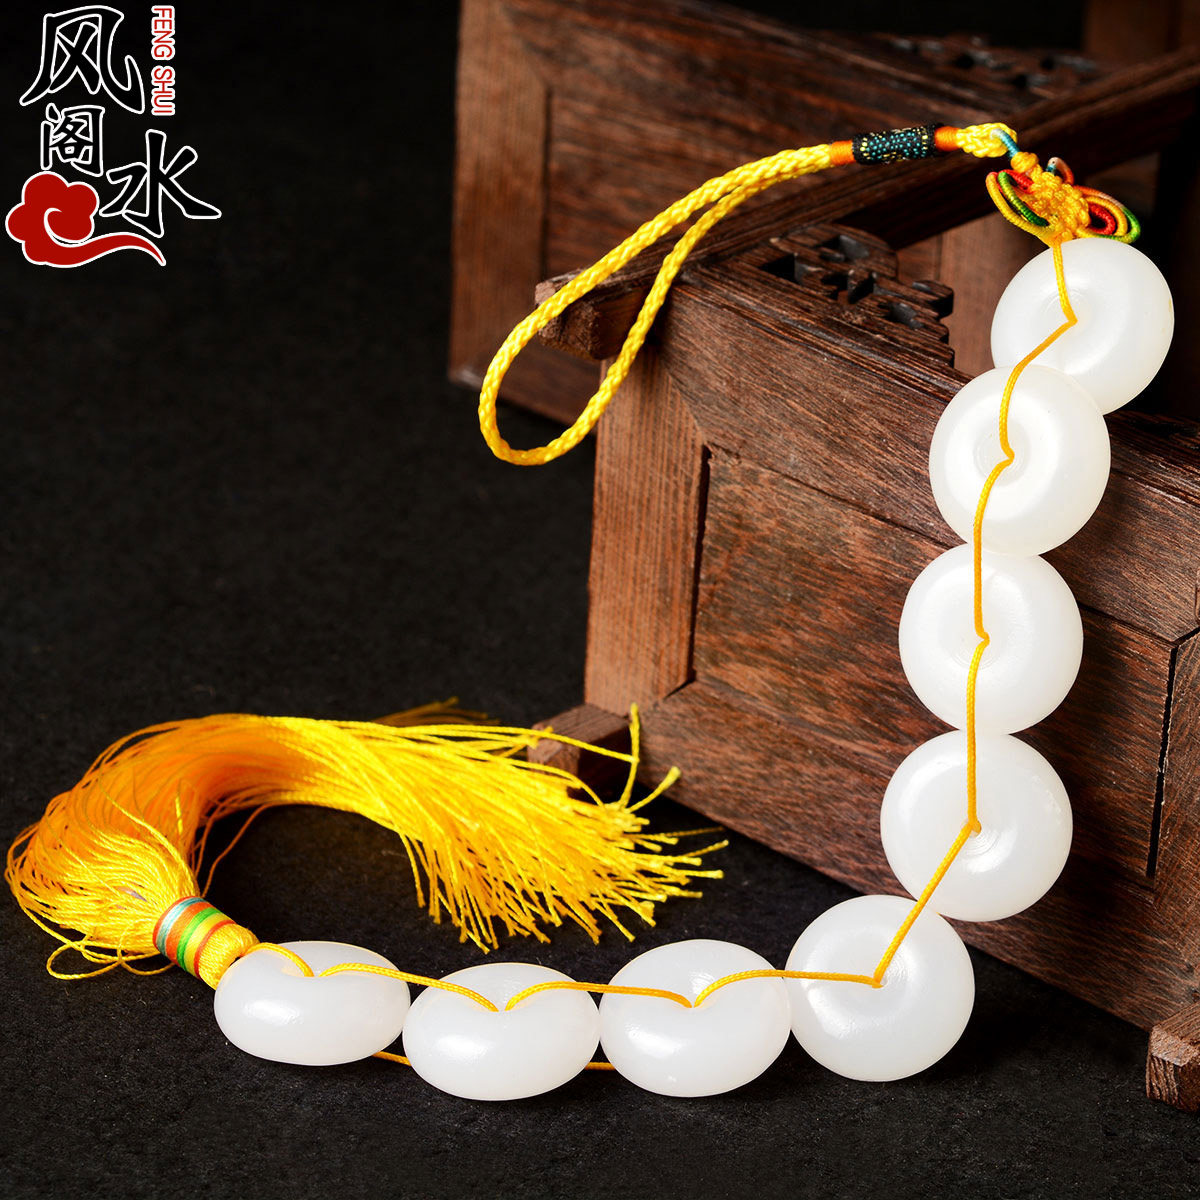 Fengshui Pavilion Babaoyu Pendant Babaoyu Ping An Button Home Decoration Ping An Hanging Home Decoration